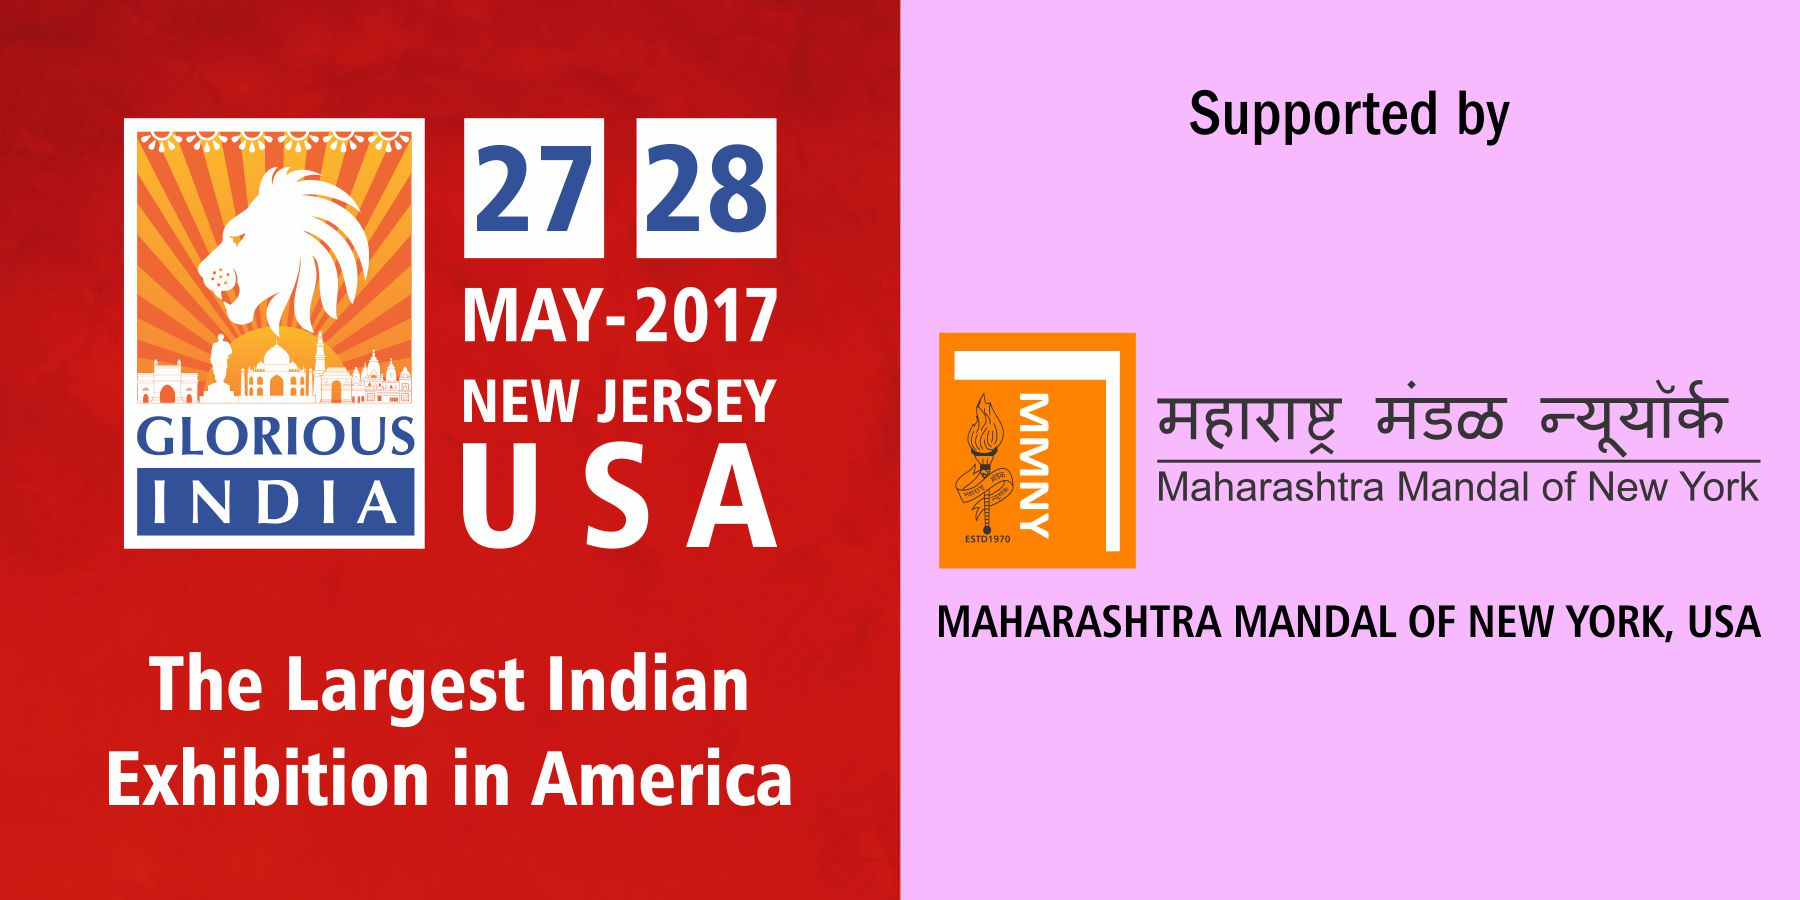 Glorious India Expo - Maharashtra Mandal of New York